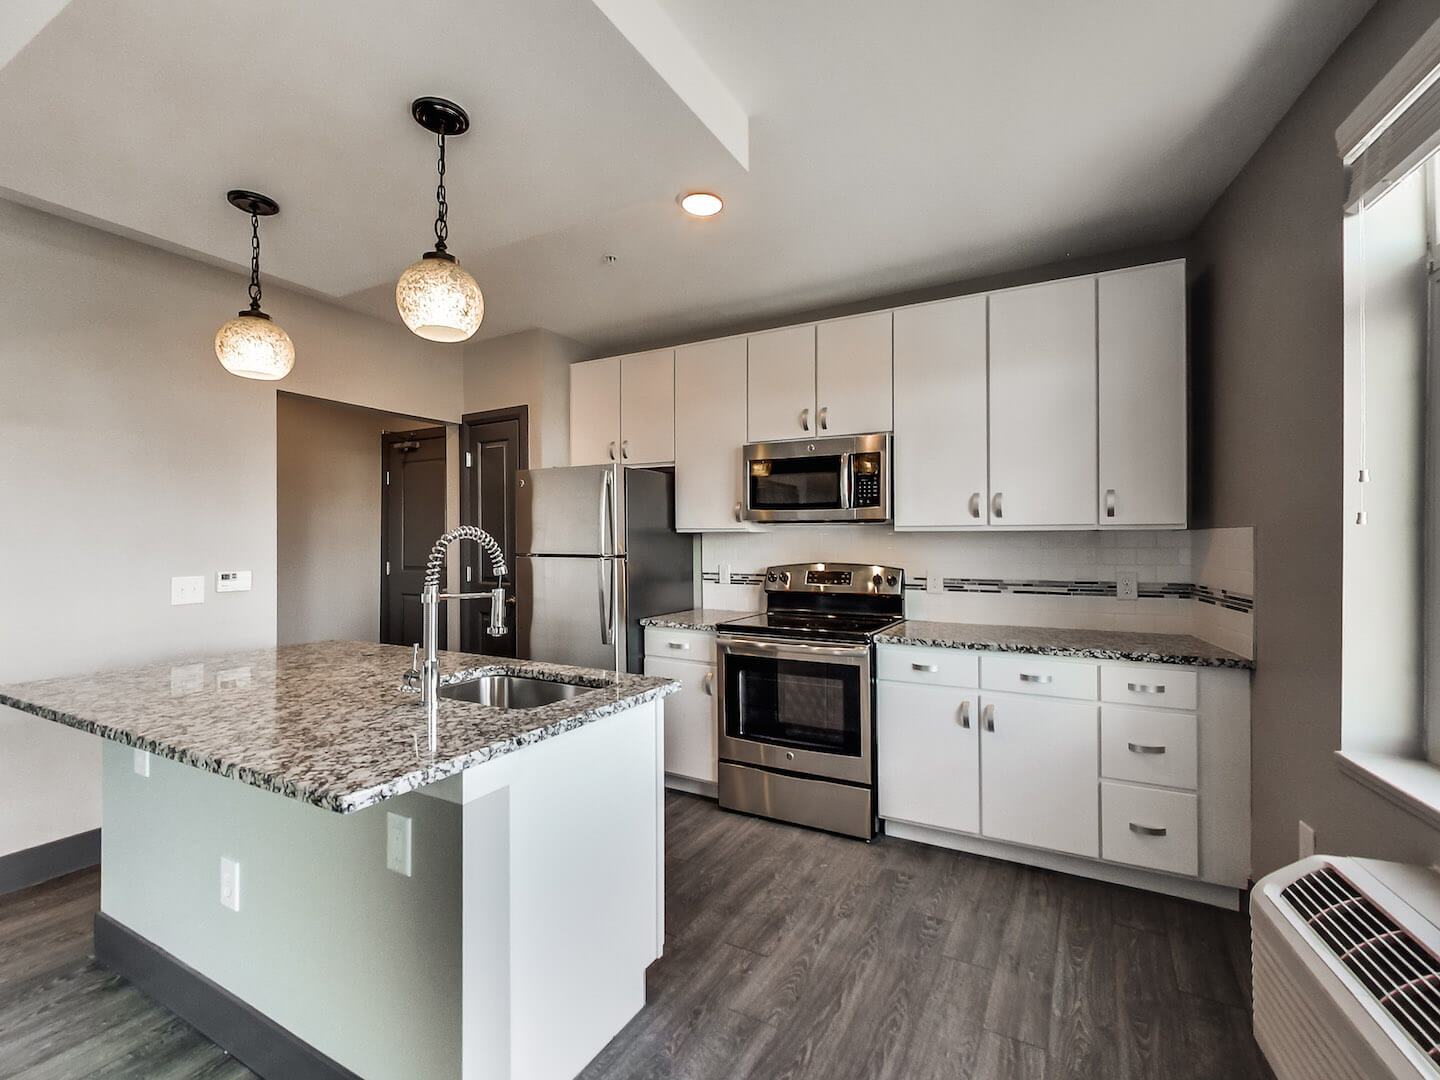 The fab five the best apartments in columbus the prescott Cheap 1 bedroom apartments in columbus ohio